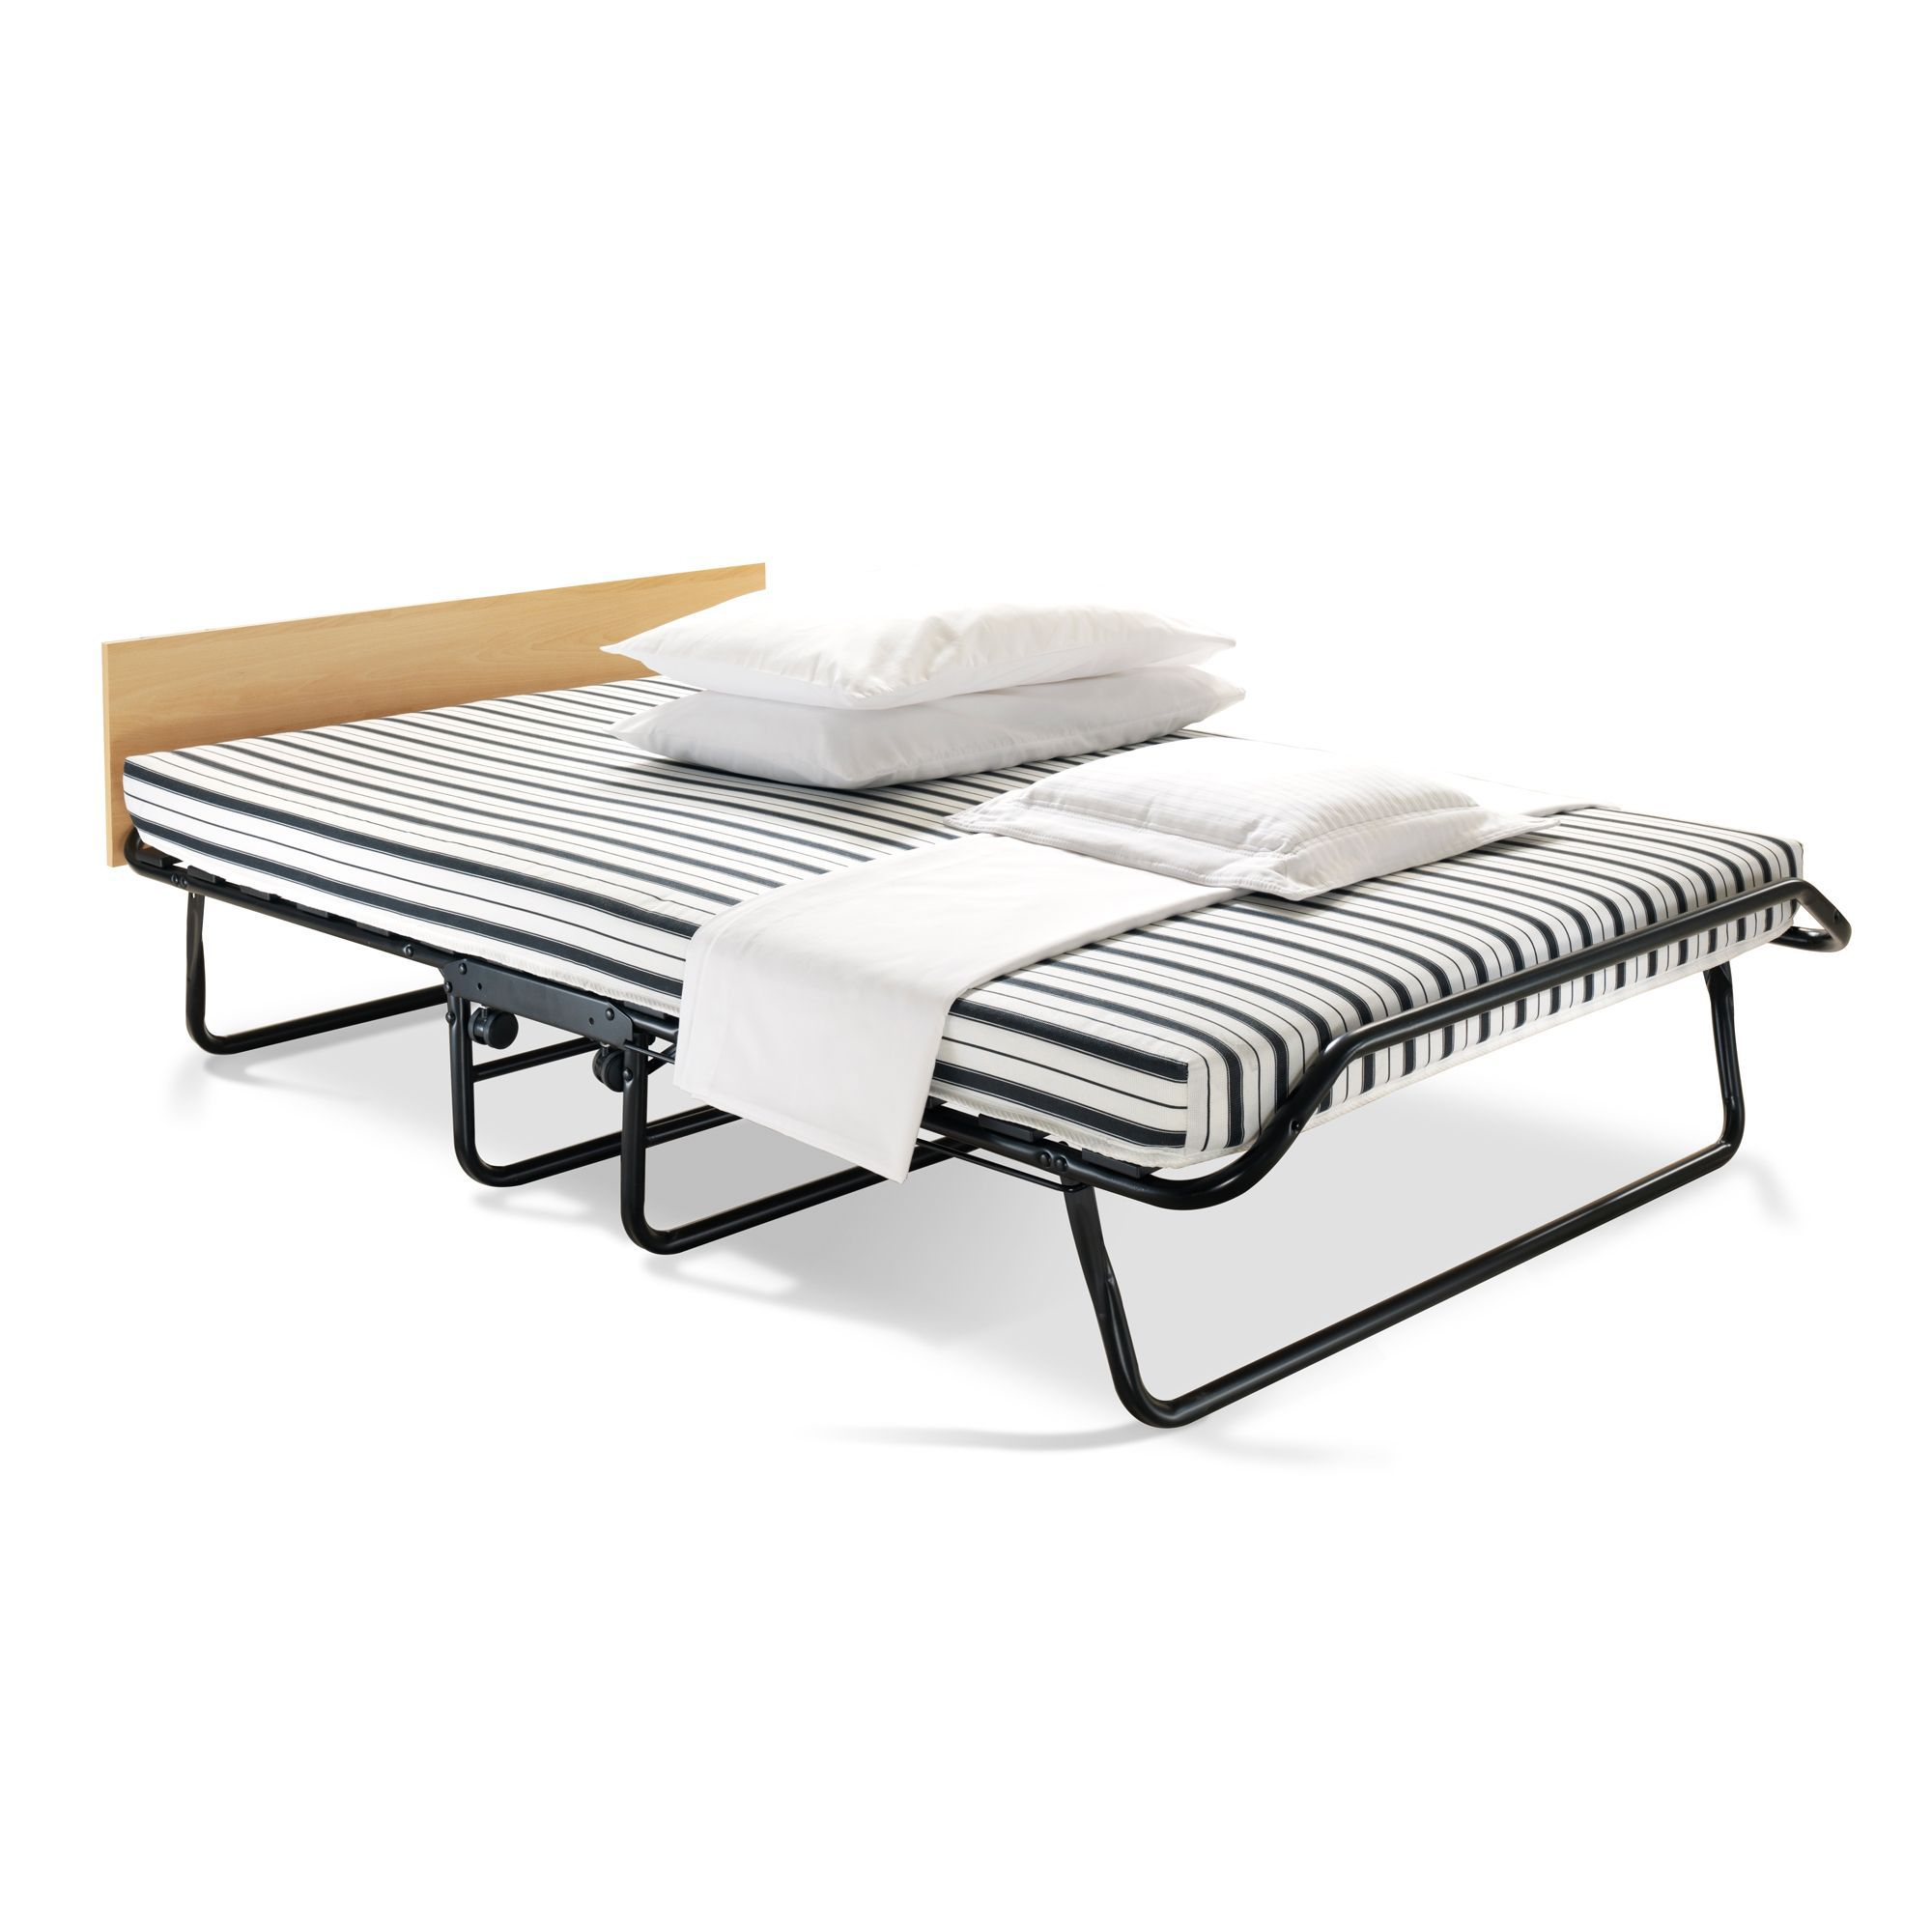 jay be jubilee double guest bed with airflow mattress departments diy at b q. Black Bedroom Furniture Sets. Home Design Ideas